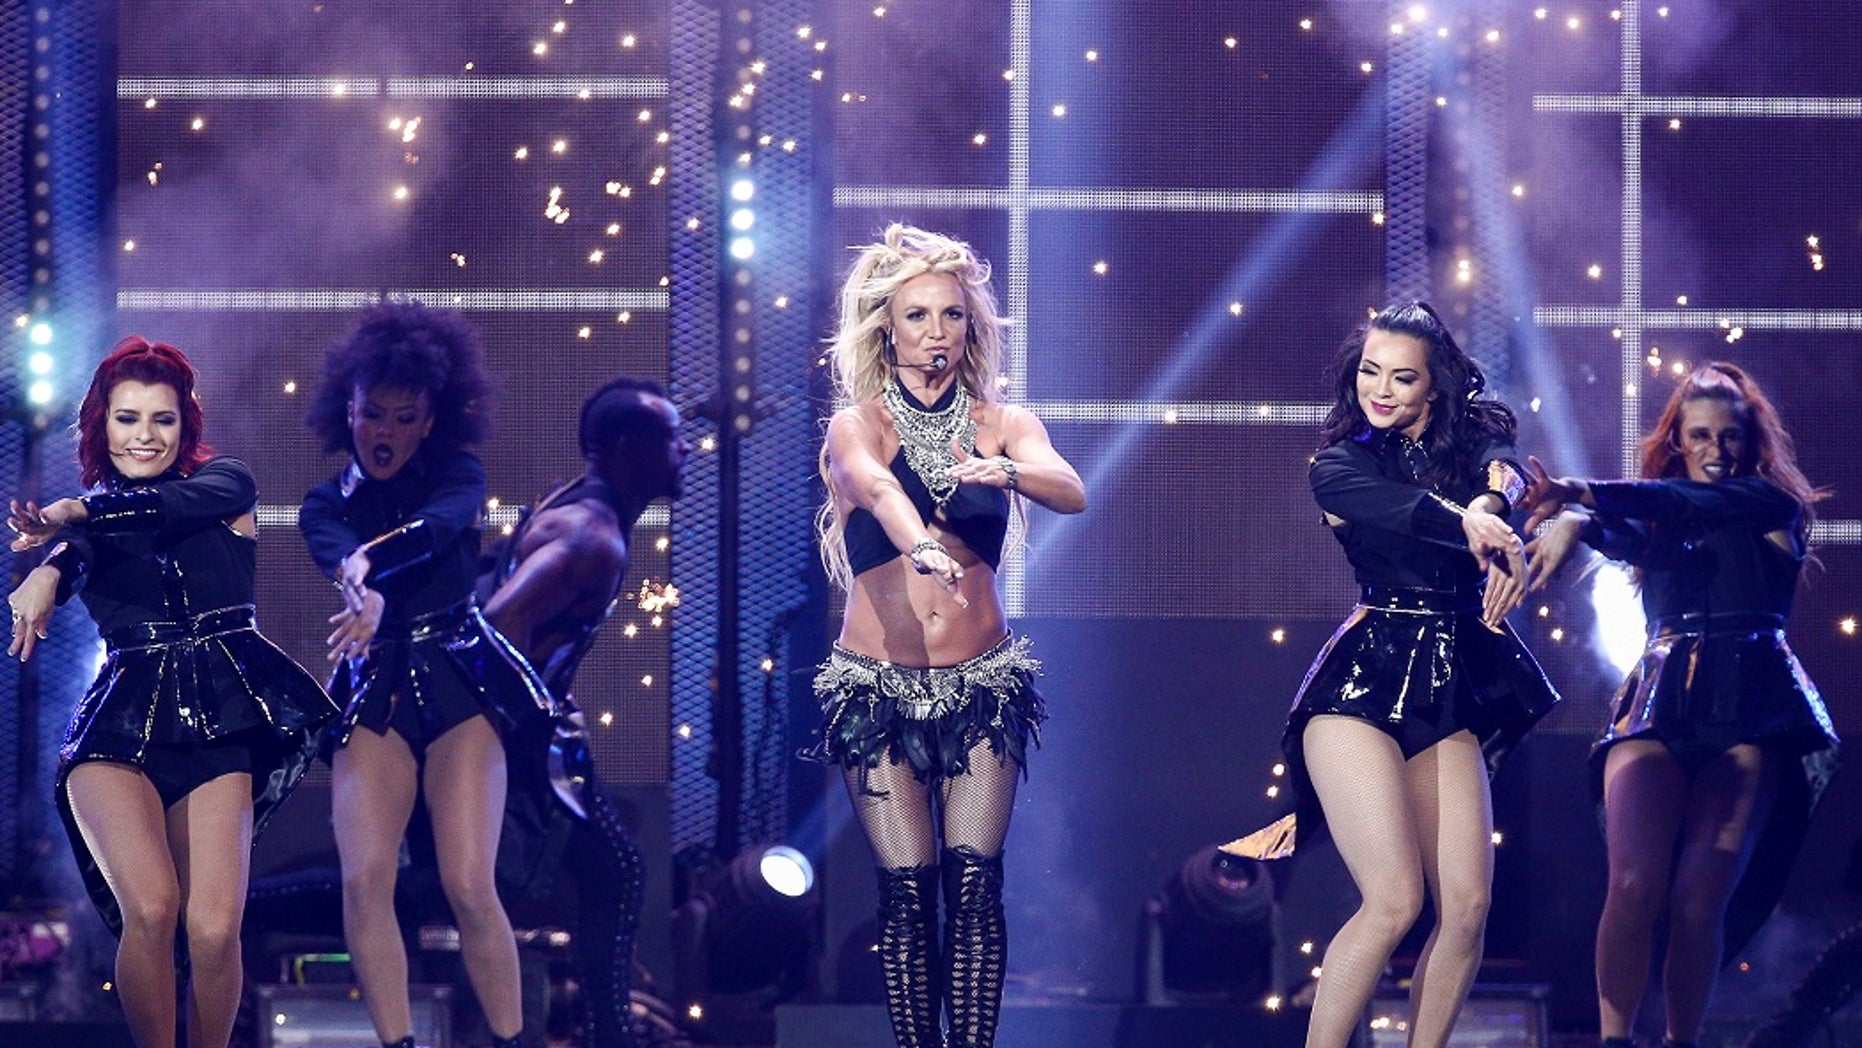 """Britney Spears fans wrote a petition asking Louisiana officials to replace Confederate monuments in New Orleans with statues of the """"Oops!... I Did it Again!"""" singer."""